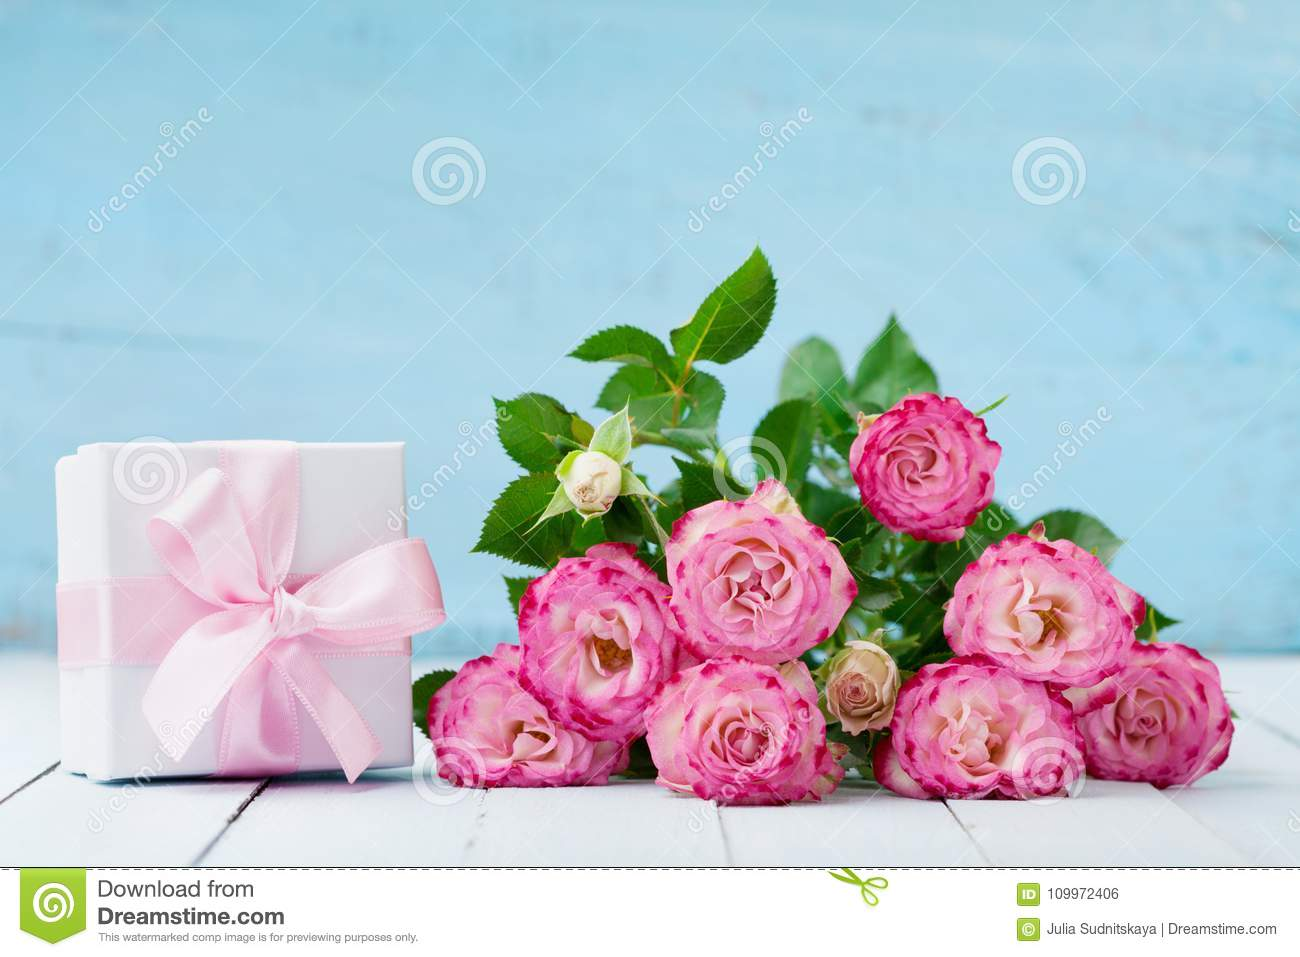 Pink Rose Flower Bouquet And Gift Box With Ribbon On Blue Table